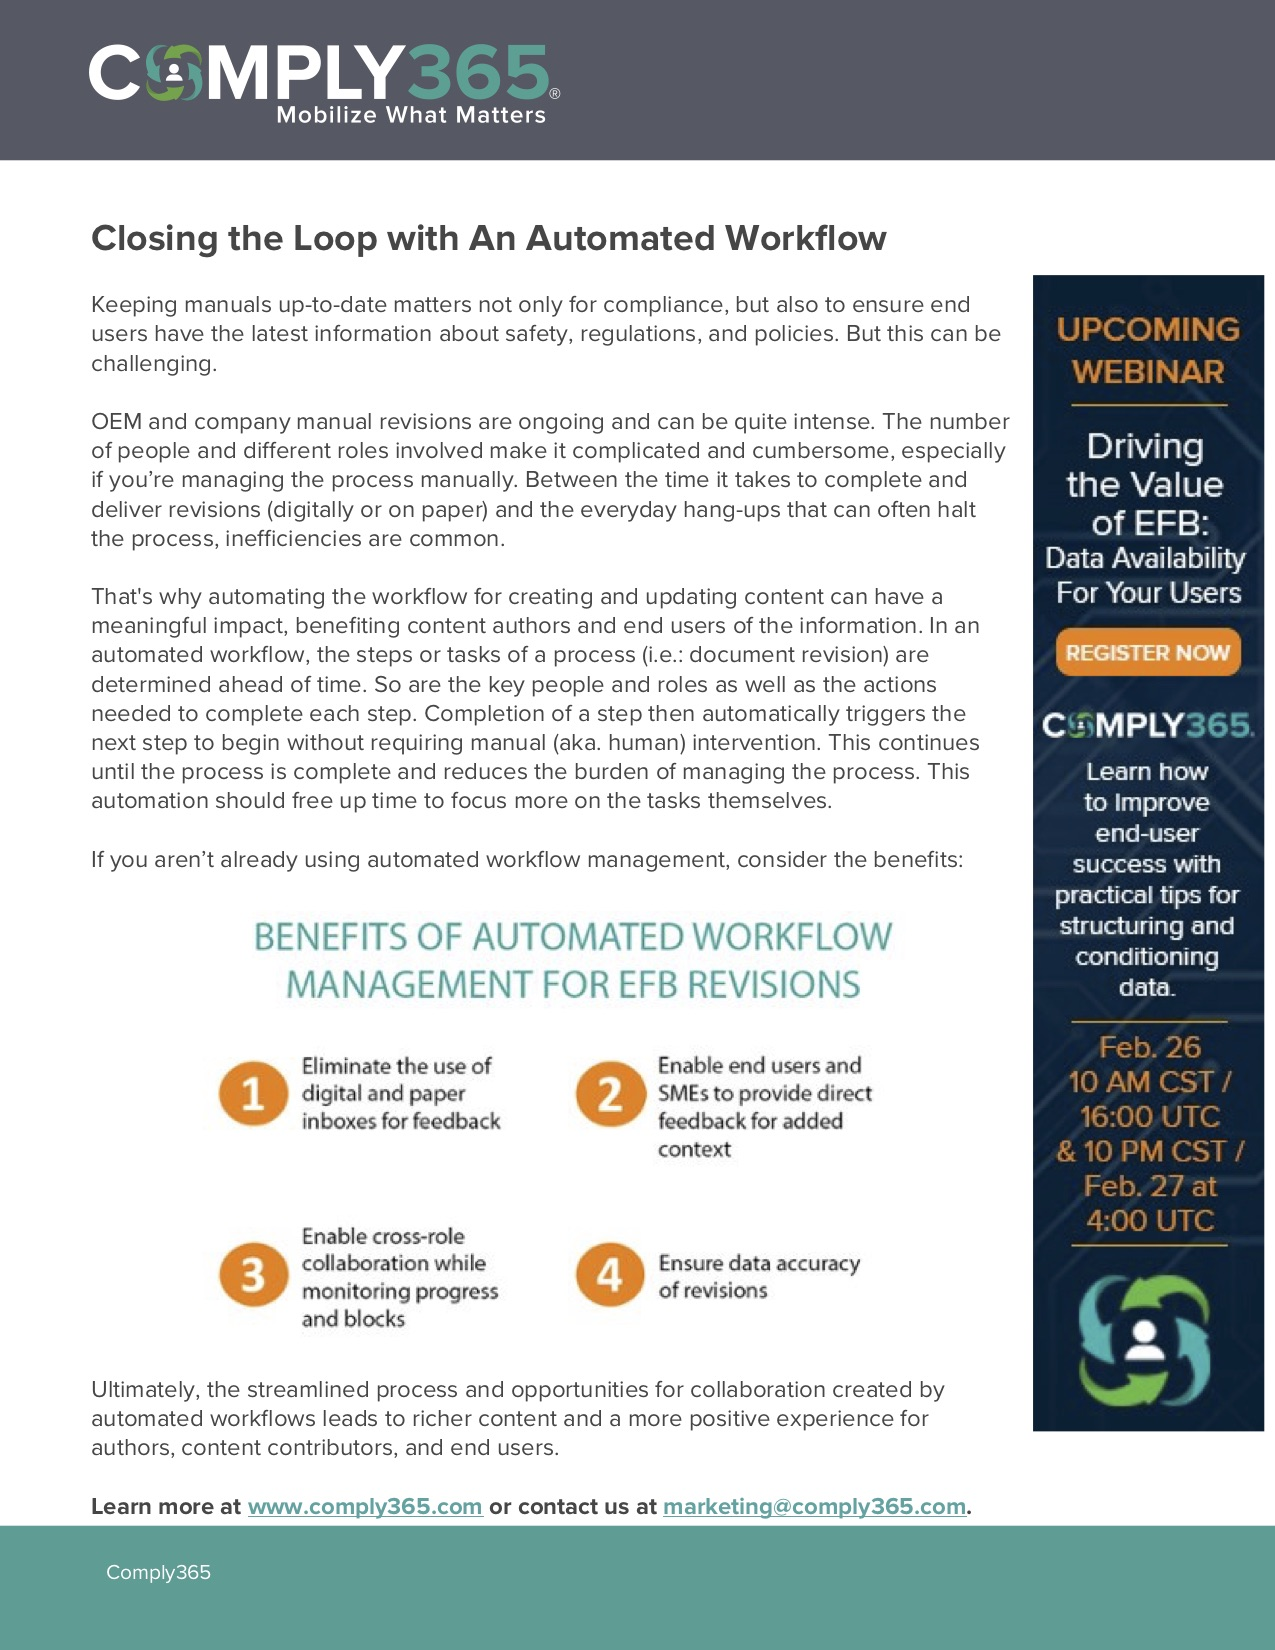 Closing the Loop with an Automated Workflow